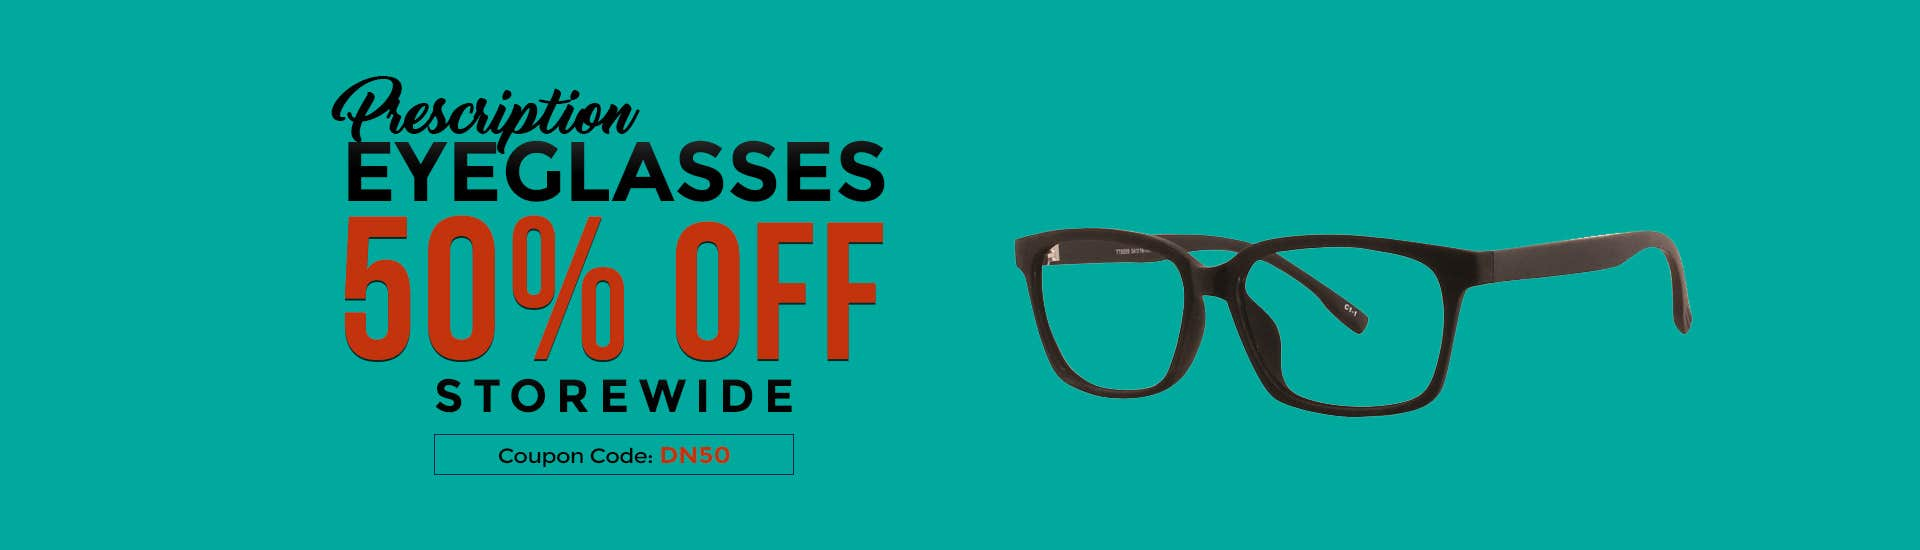 b4a8e616ba Exclusive Offers on Discounted Eyeglasses at Hip2Save by Goggles4u